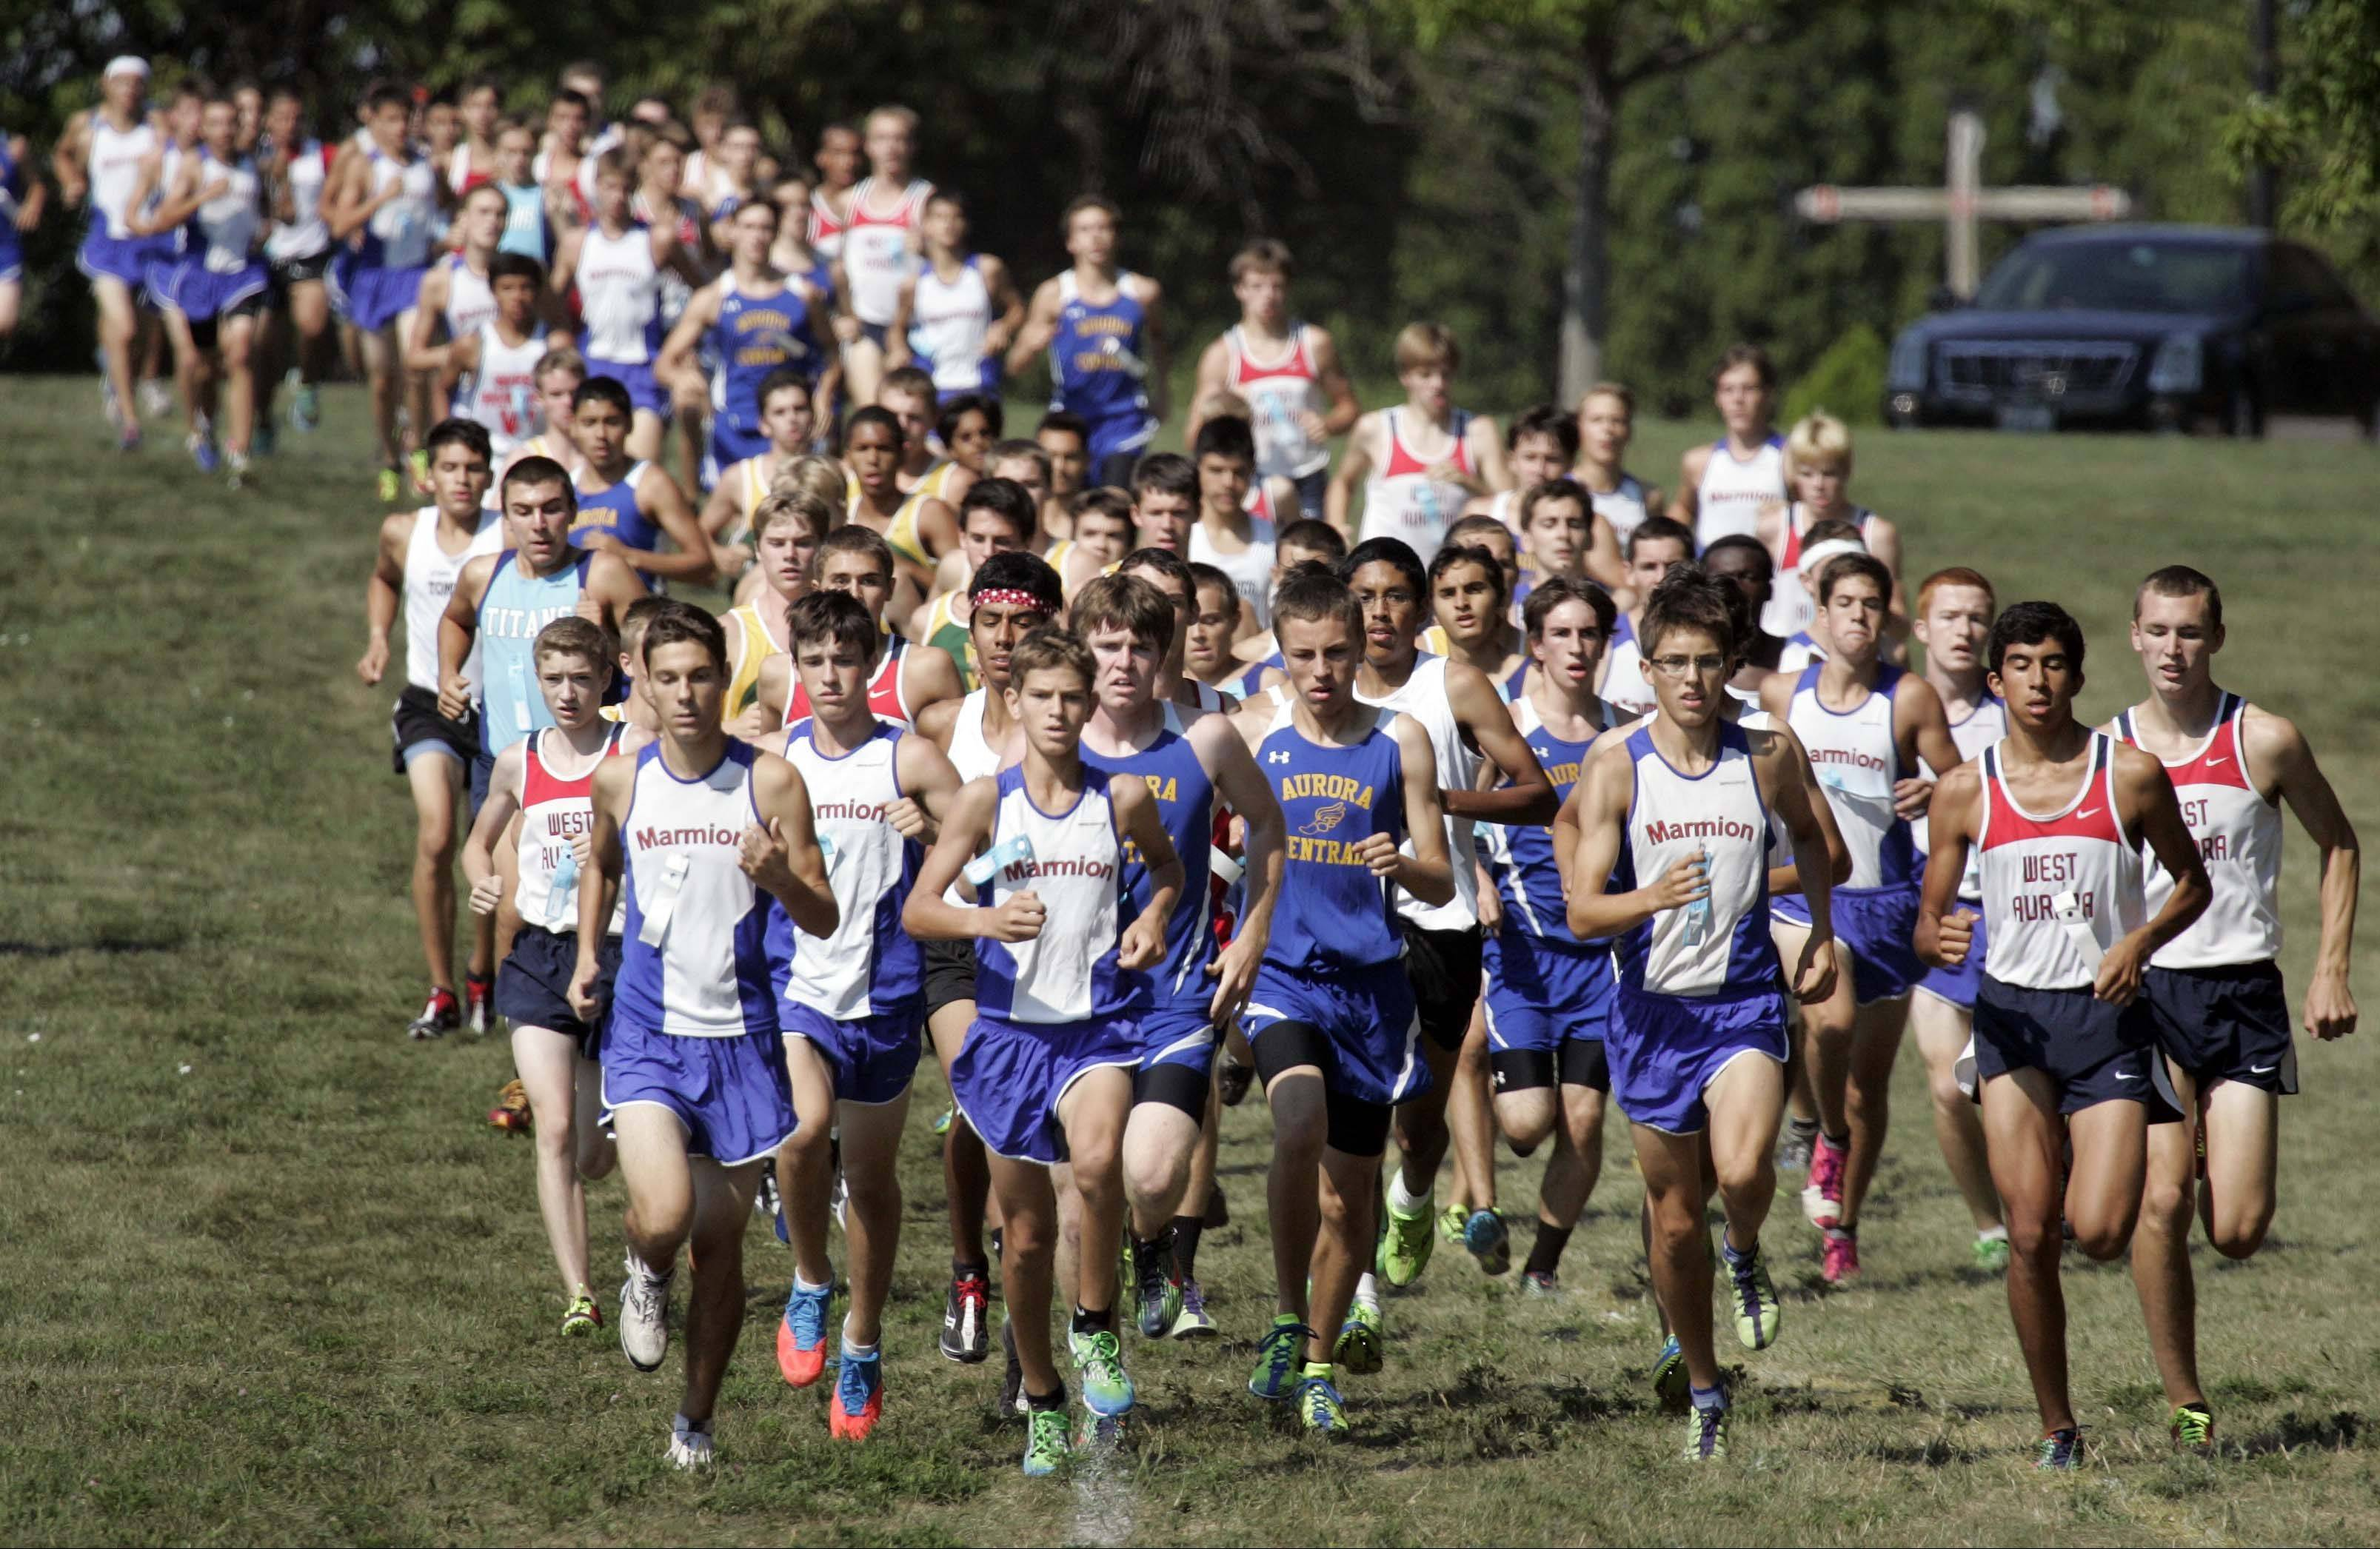 Runners take off at the start of the boys varsity race.